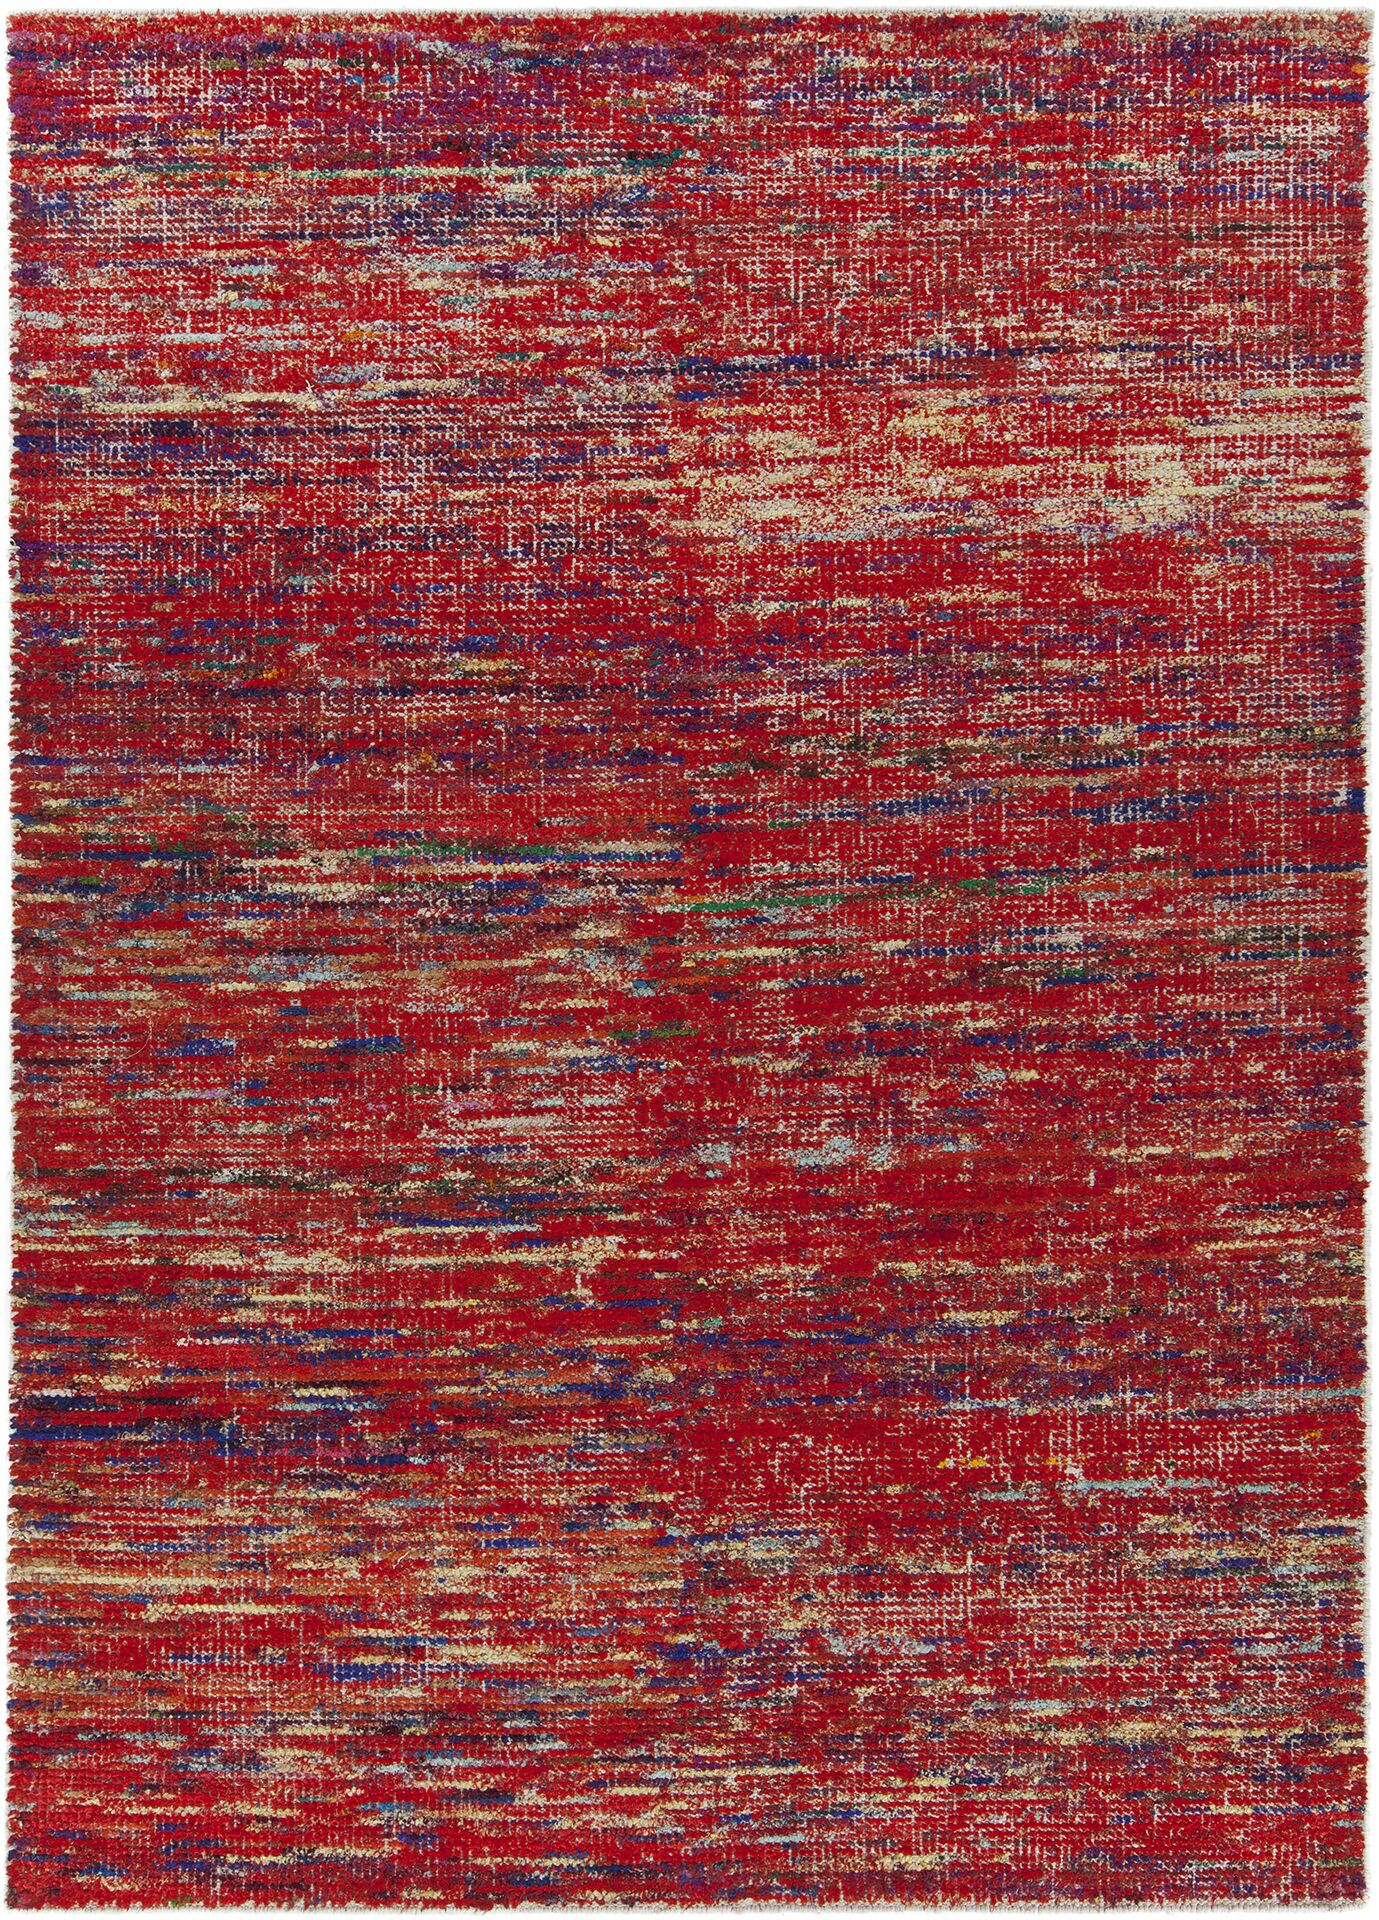 Marcial Hand-Woven Red Area Rug Rug Size: 7'9